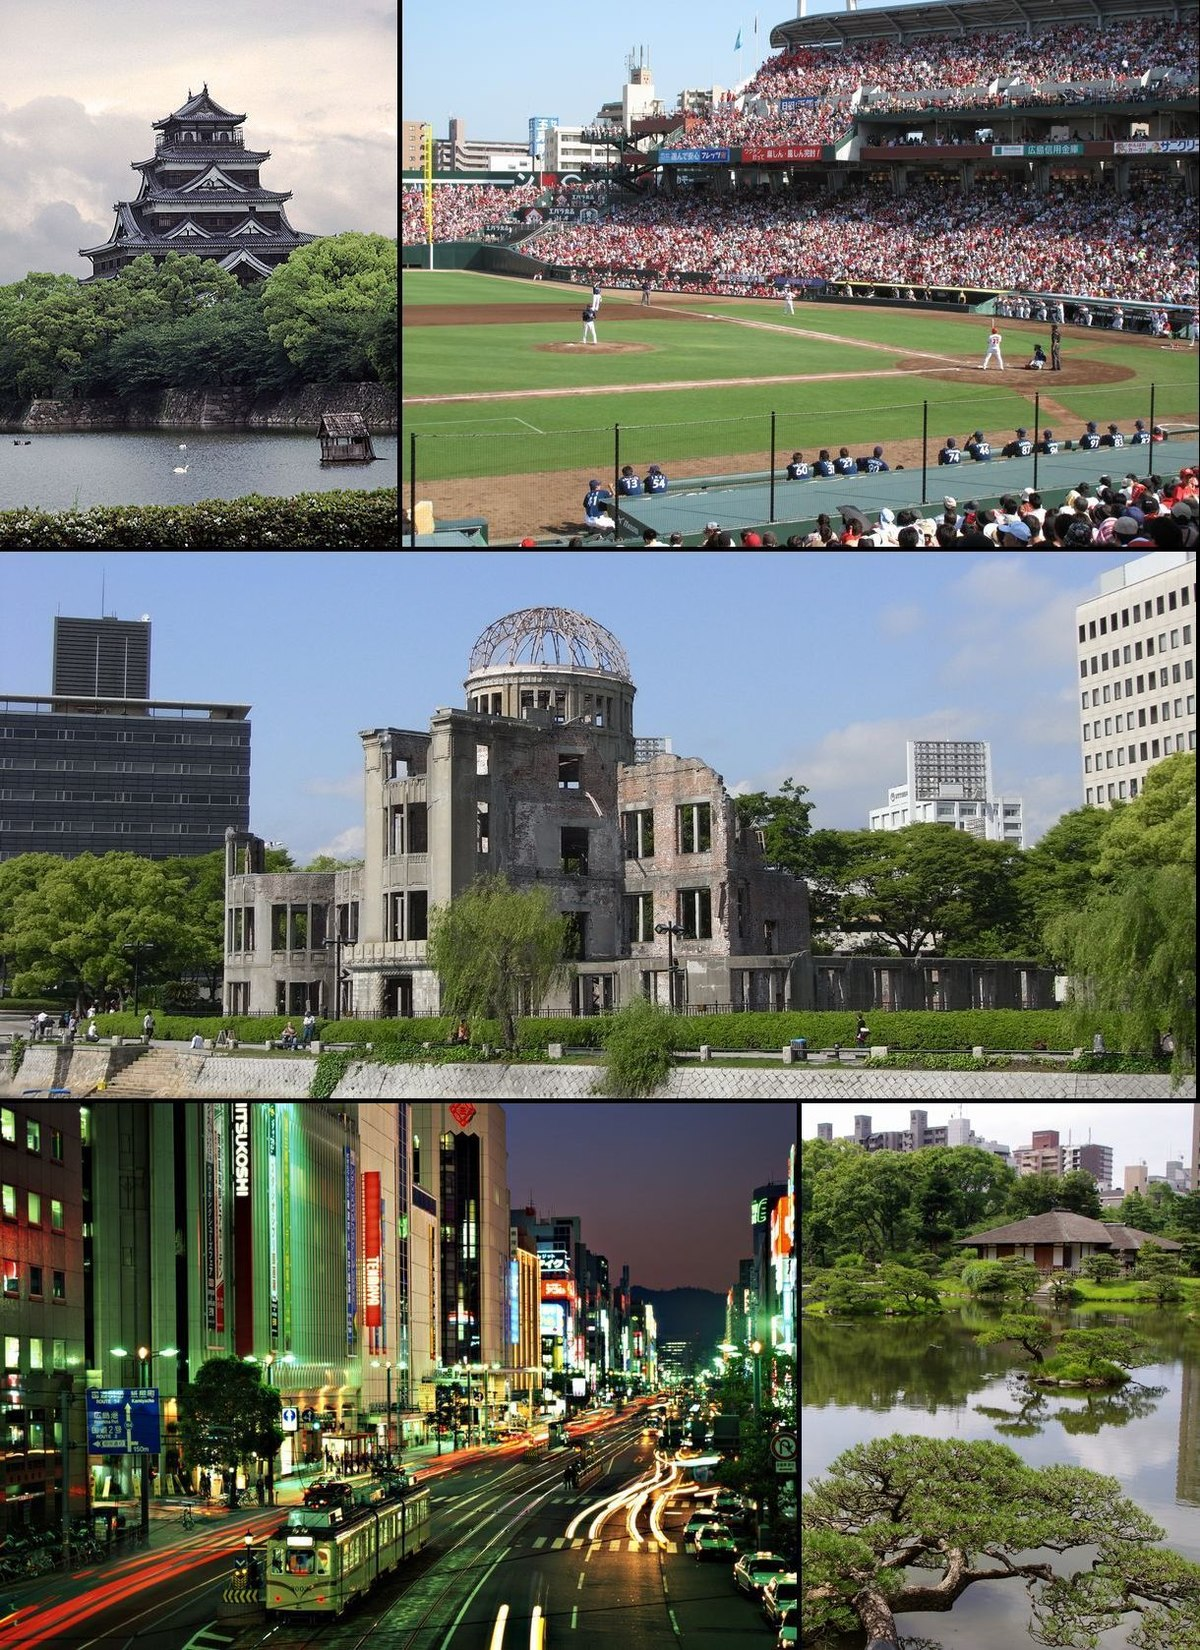 hiroshima Hiroshima: the first city destroyed by a nuclear weapon on august 6, 1945, the japanese city of hiroshima was destroyed by a nuclear weapon, an atomic bomb dropped by the united states.